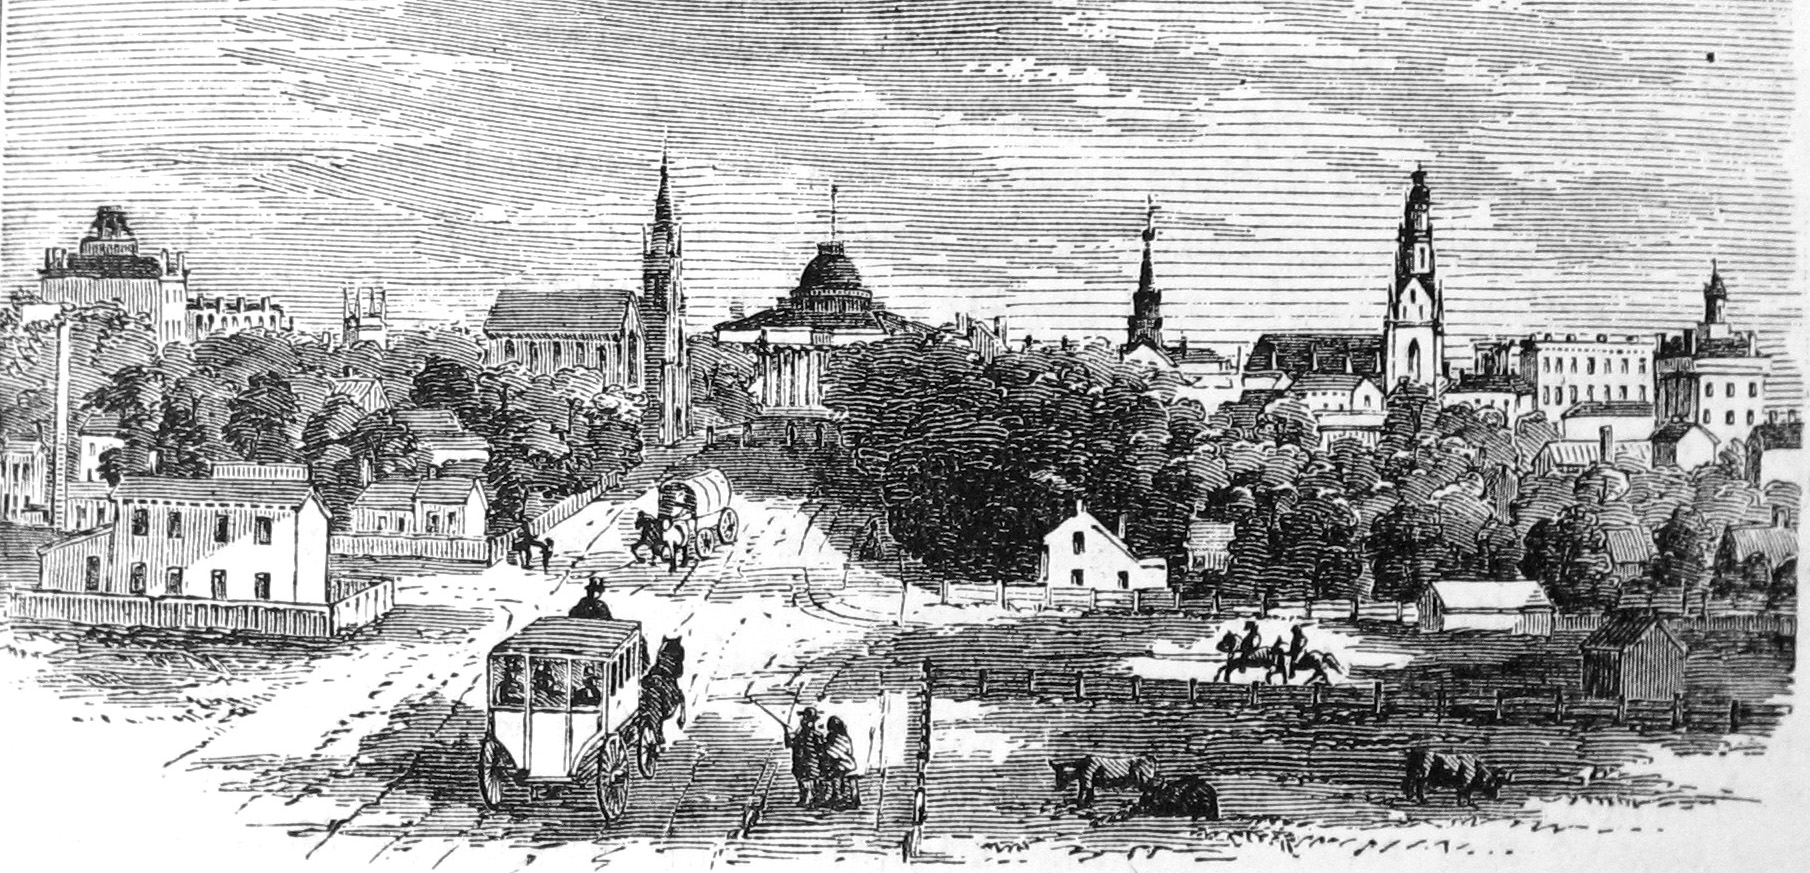 View of downtown and the Capitol from Washington Avenue, 1865